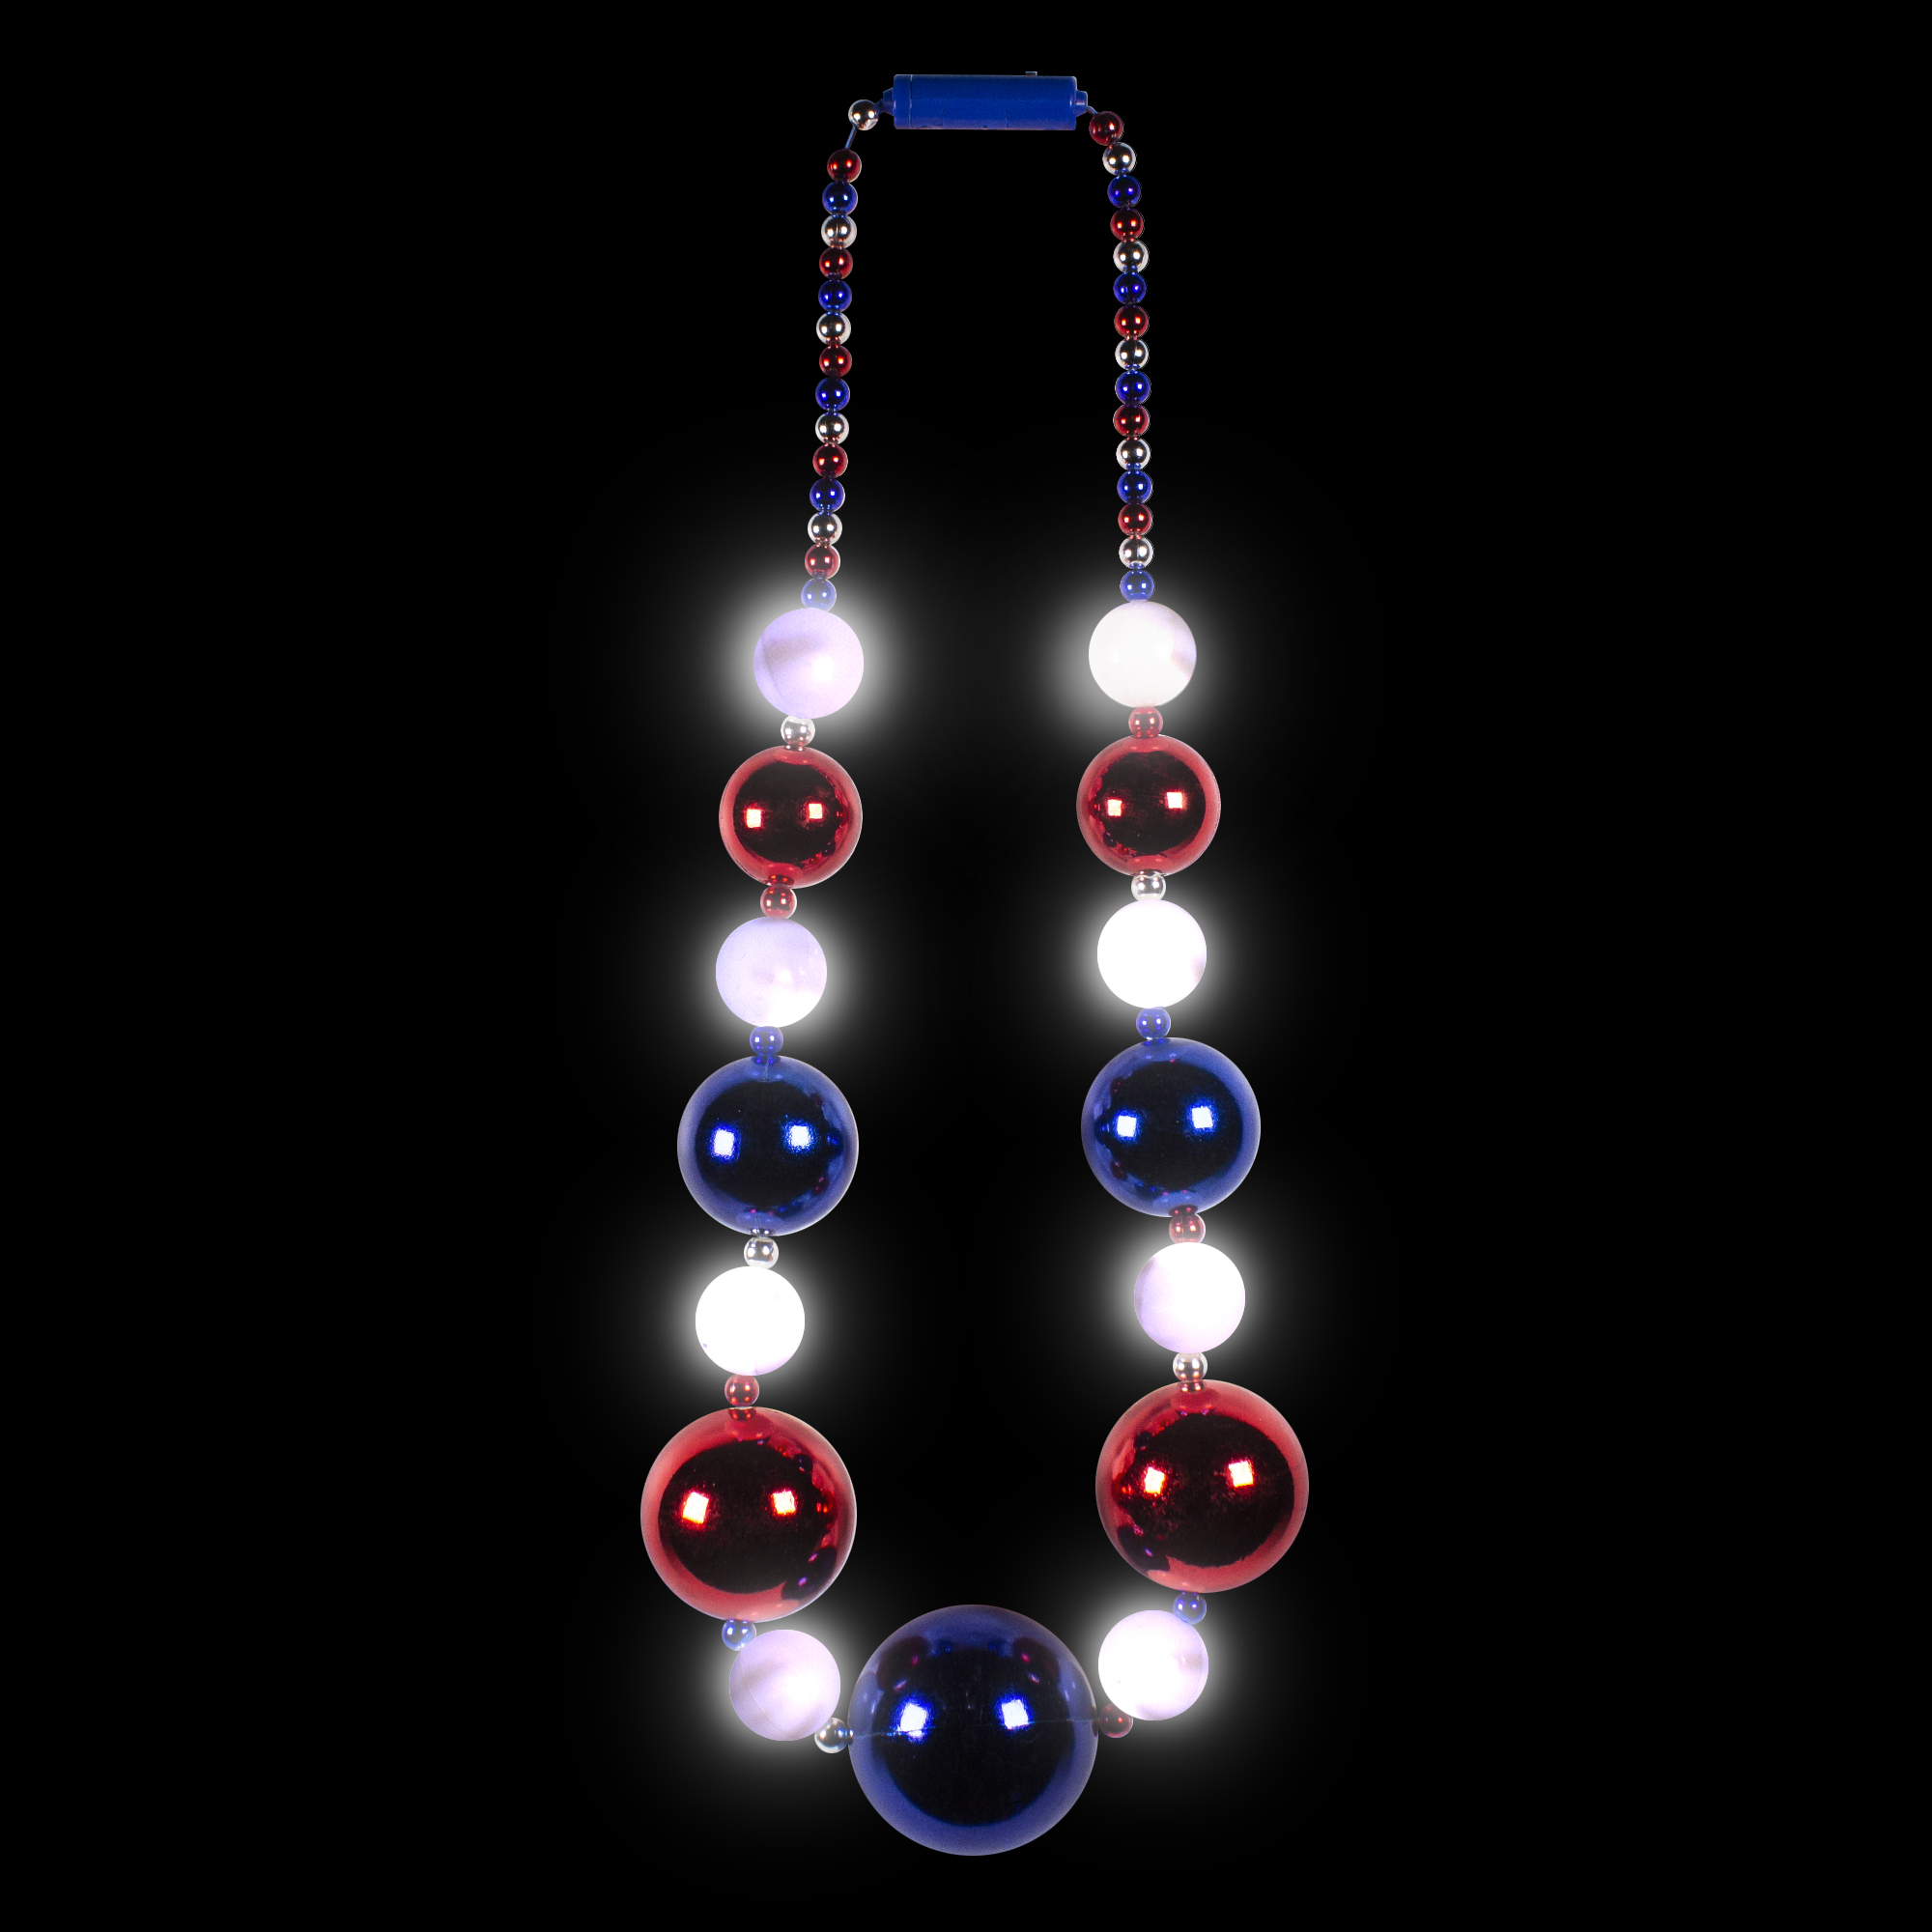 JUMBO 8 LED PATRIOTIC BALL BEADS NECKLACE